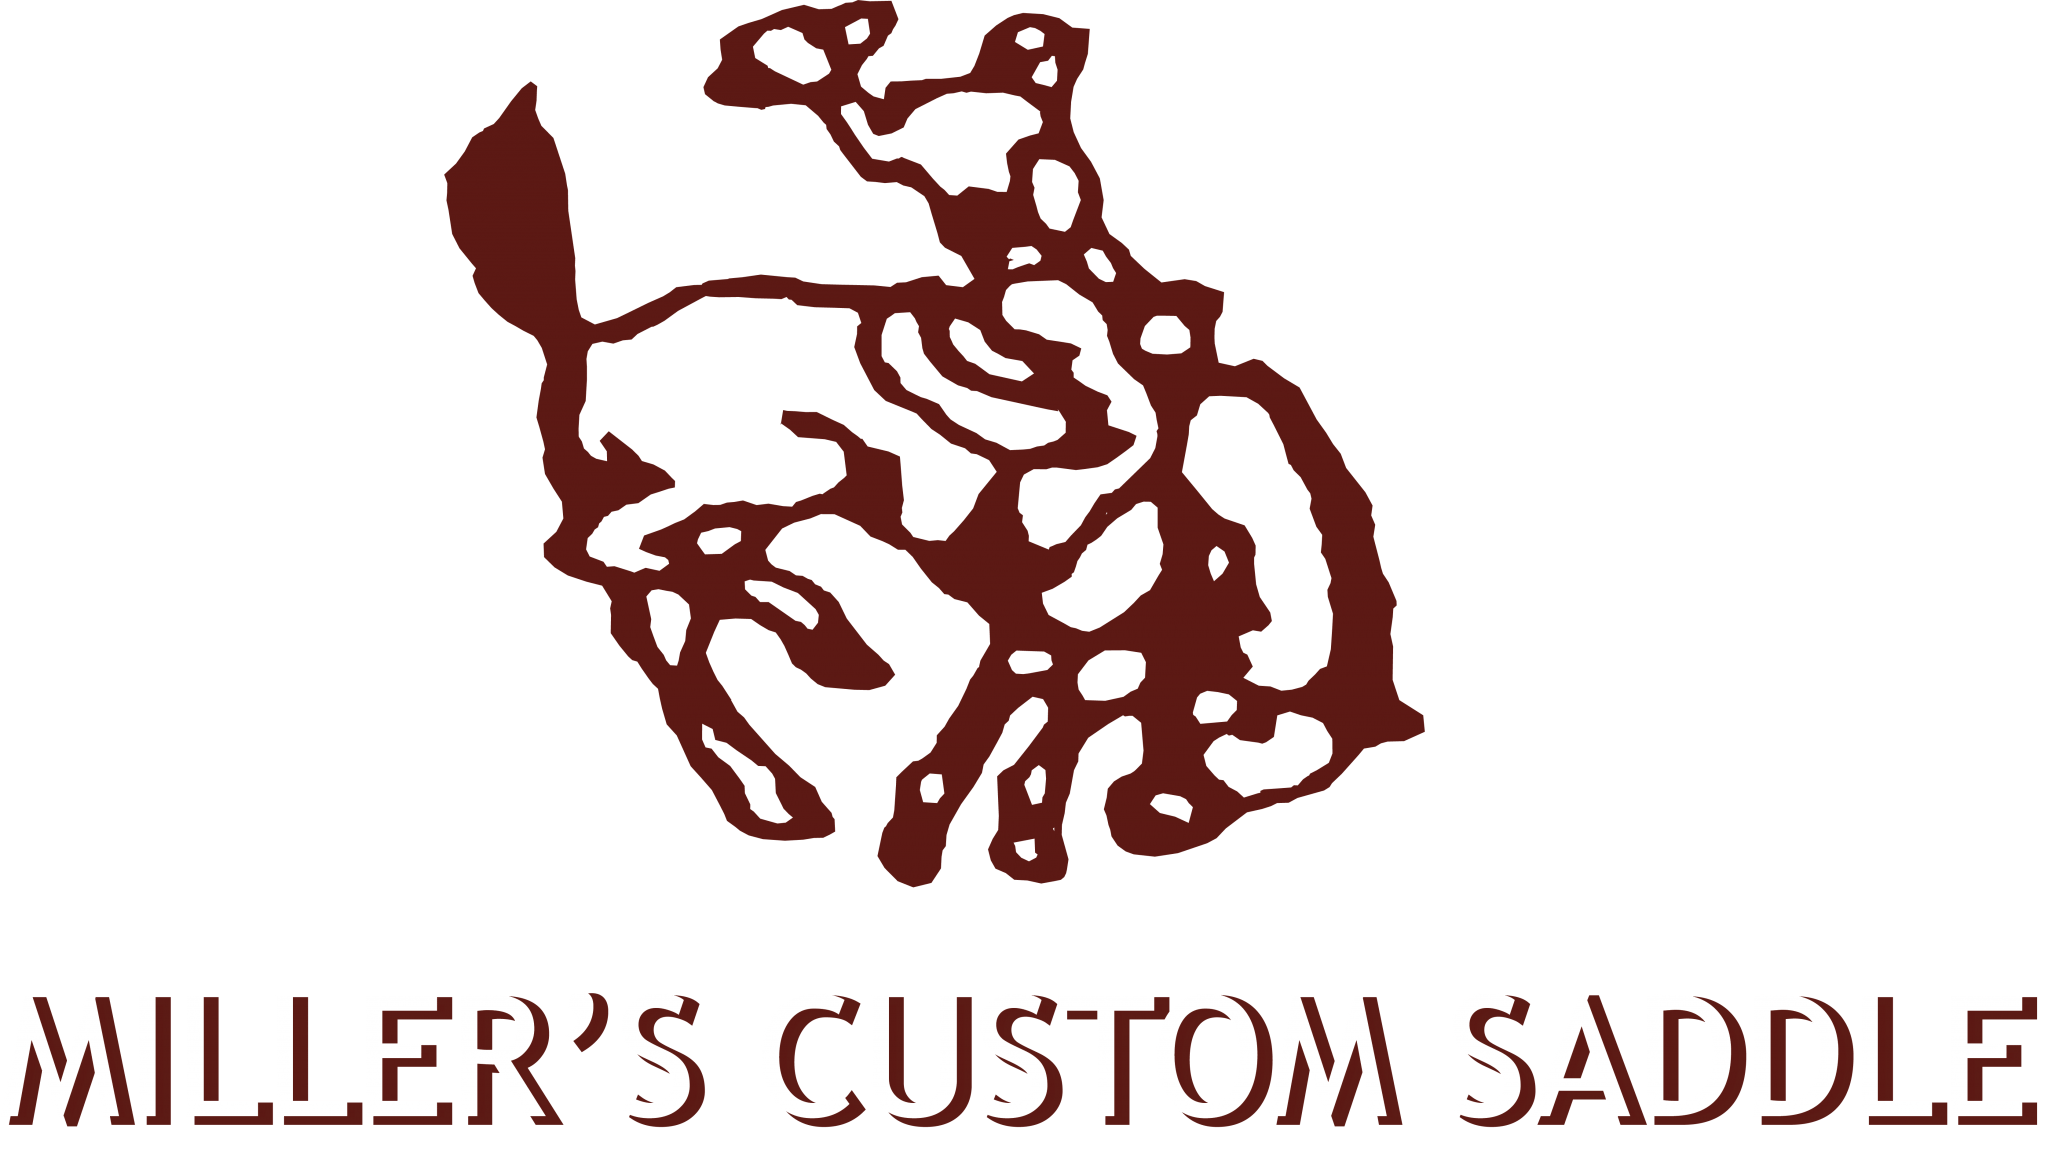 Miller Custom Saddle | 3007 Barnett's Creek Road, Columbia, KY 42728